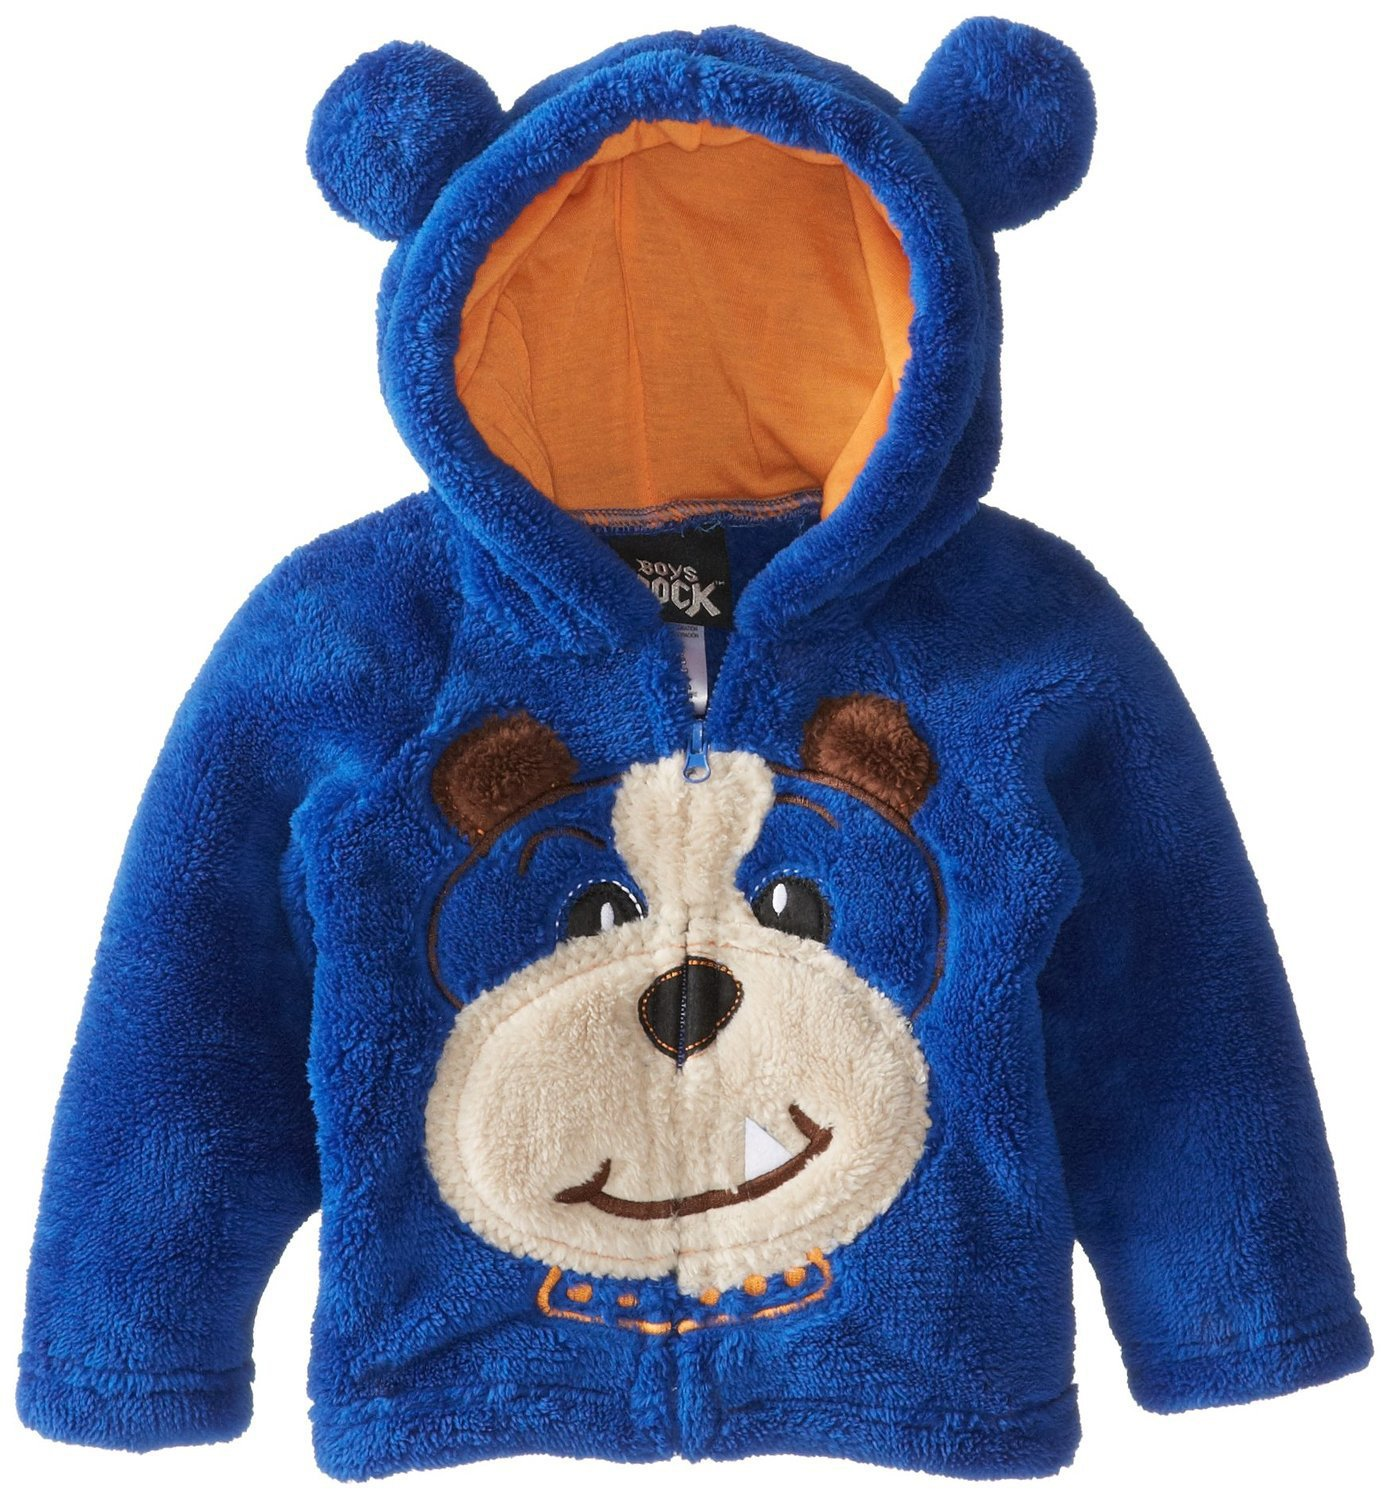 ФОТО new winter coats for boys girls coral velvet embroidery cartoon cat modeling hooded coat kids warm clothing casual